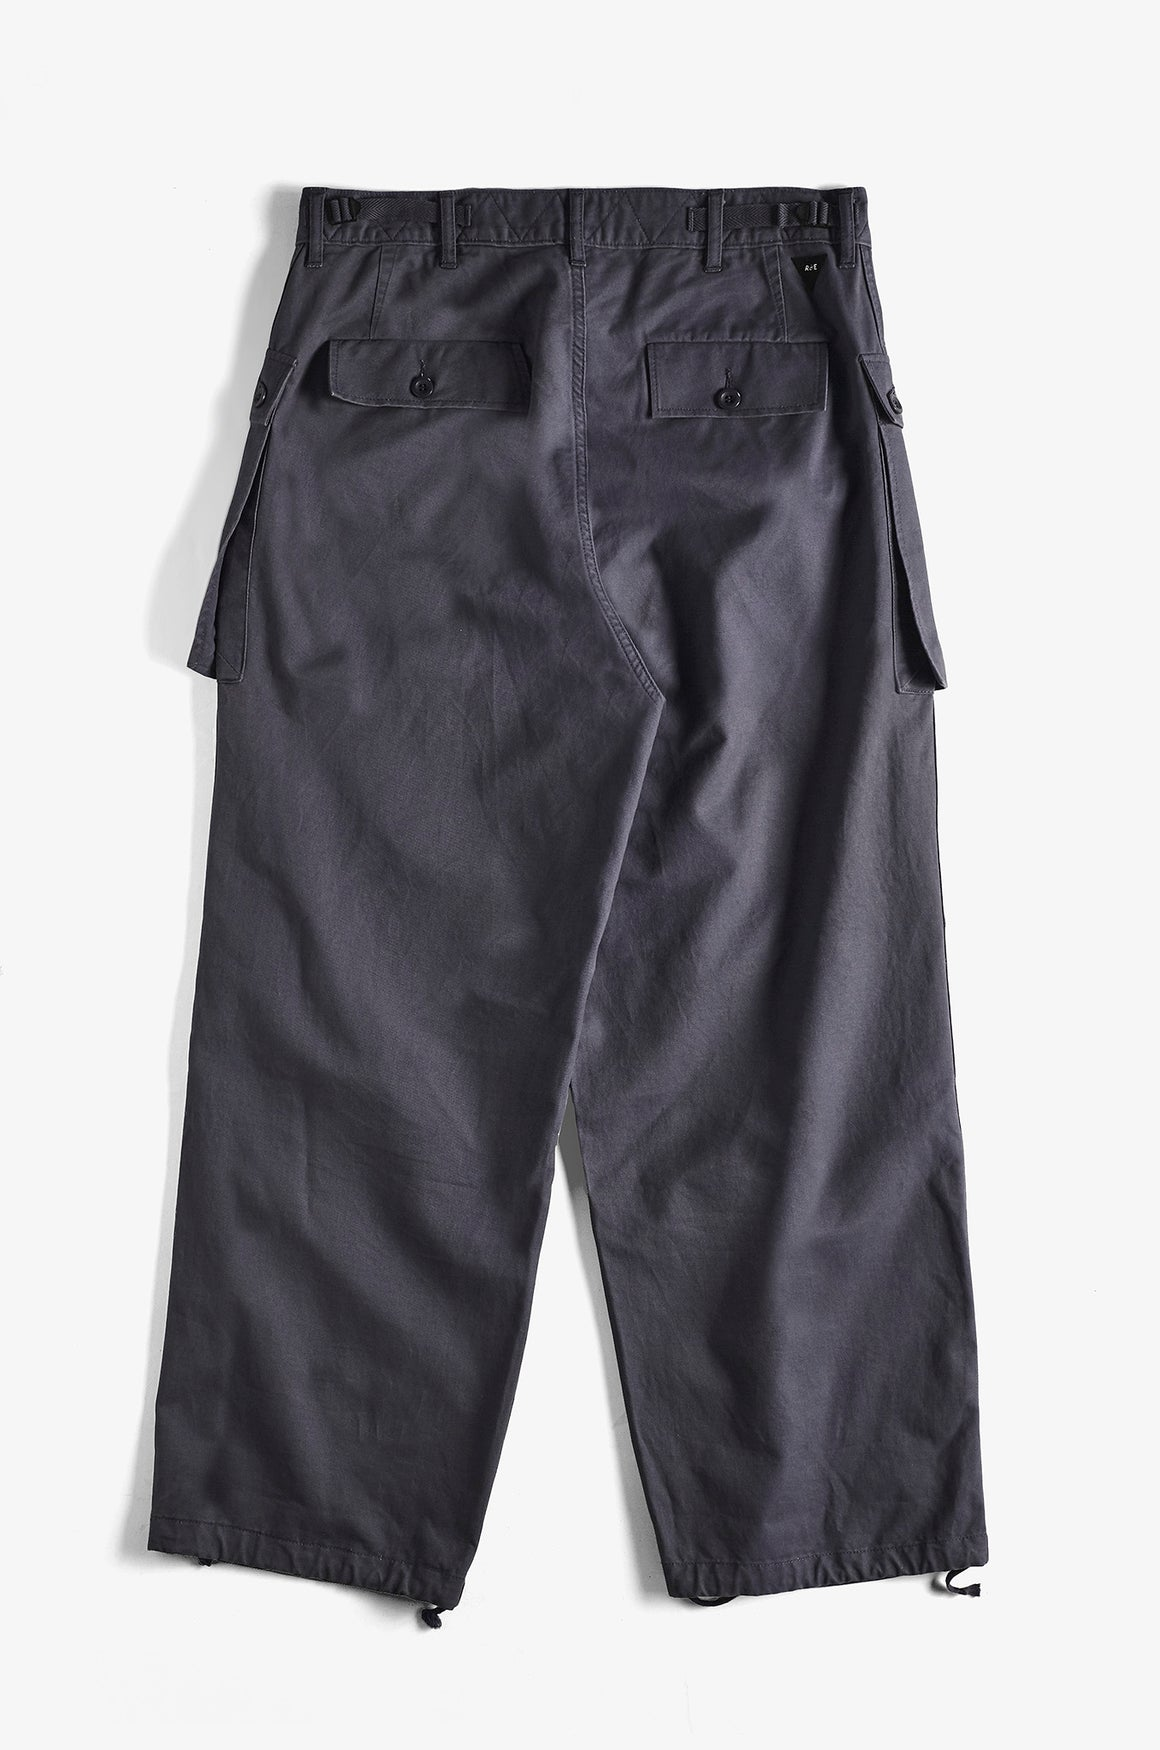 USMC Utility Pant | Navy - issue #RE0498 | Vintage Style Workwear - Front